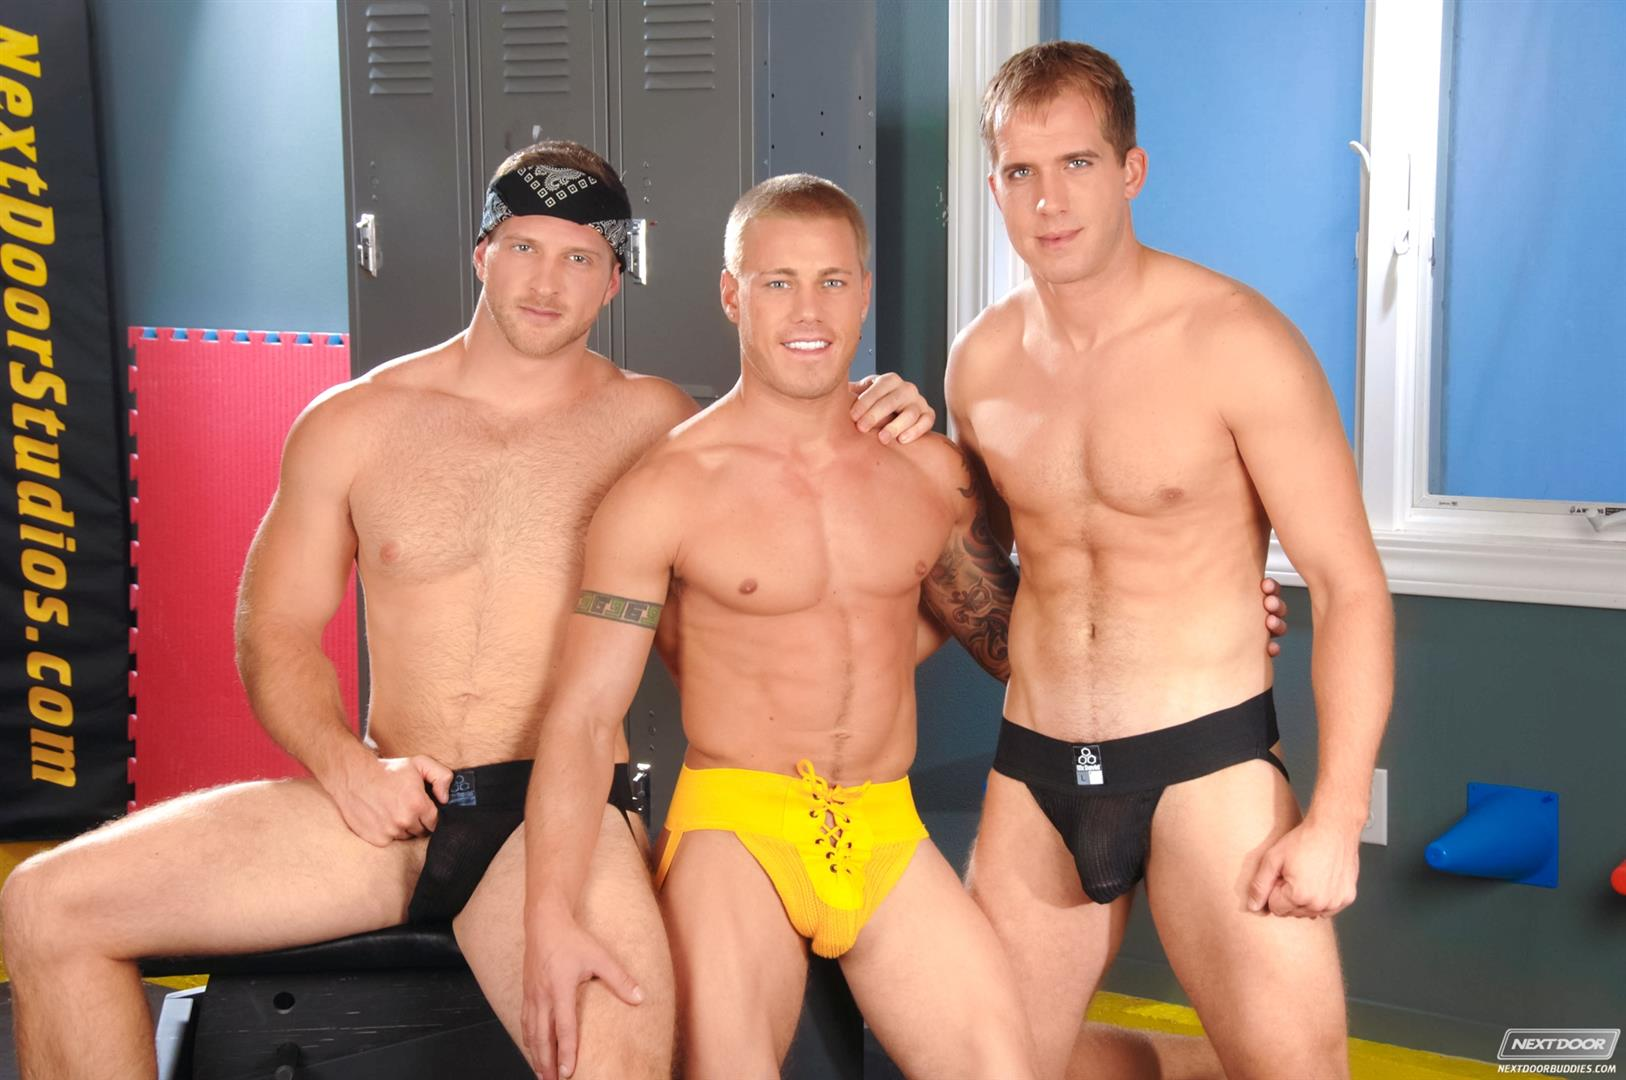 Next Door Buddies Brandon Lewis Paul Wagner Brody Wilder Hung Jocks Fucking In The Locker Room Amateur Gay Porn 07 Muscle Jocks Tag Teaming A Hot Muscle Ass In The Gym Locker Room